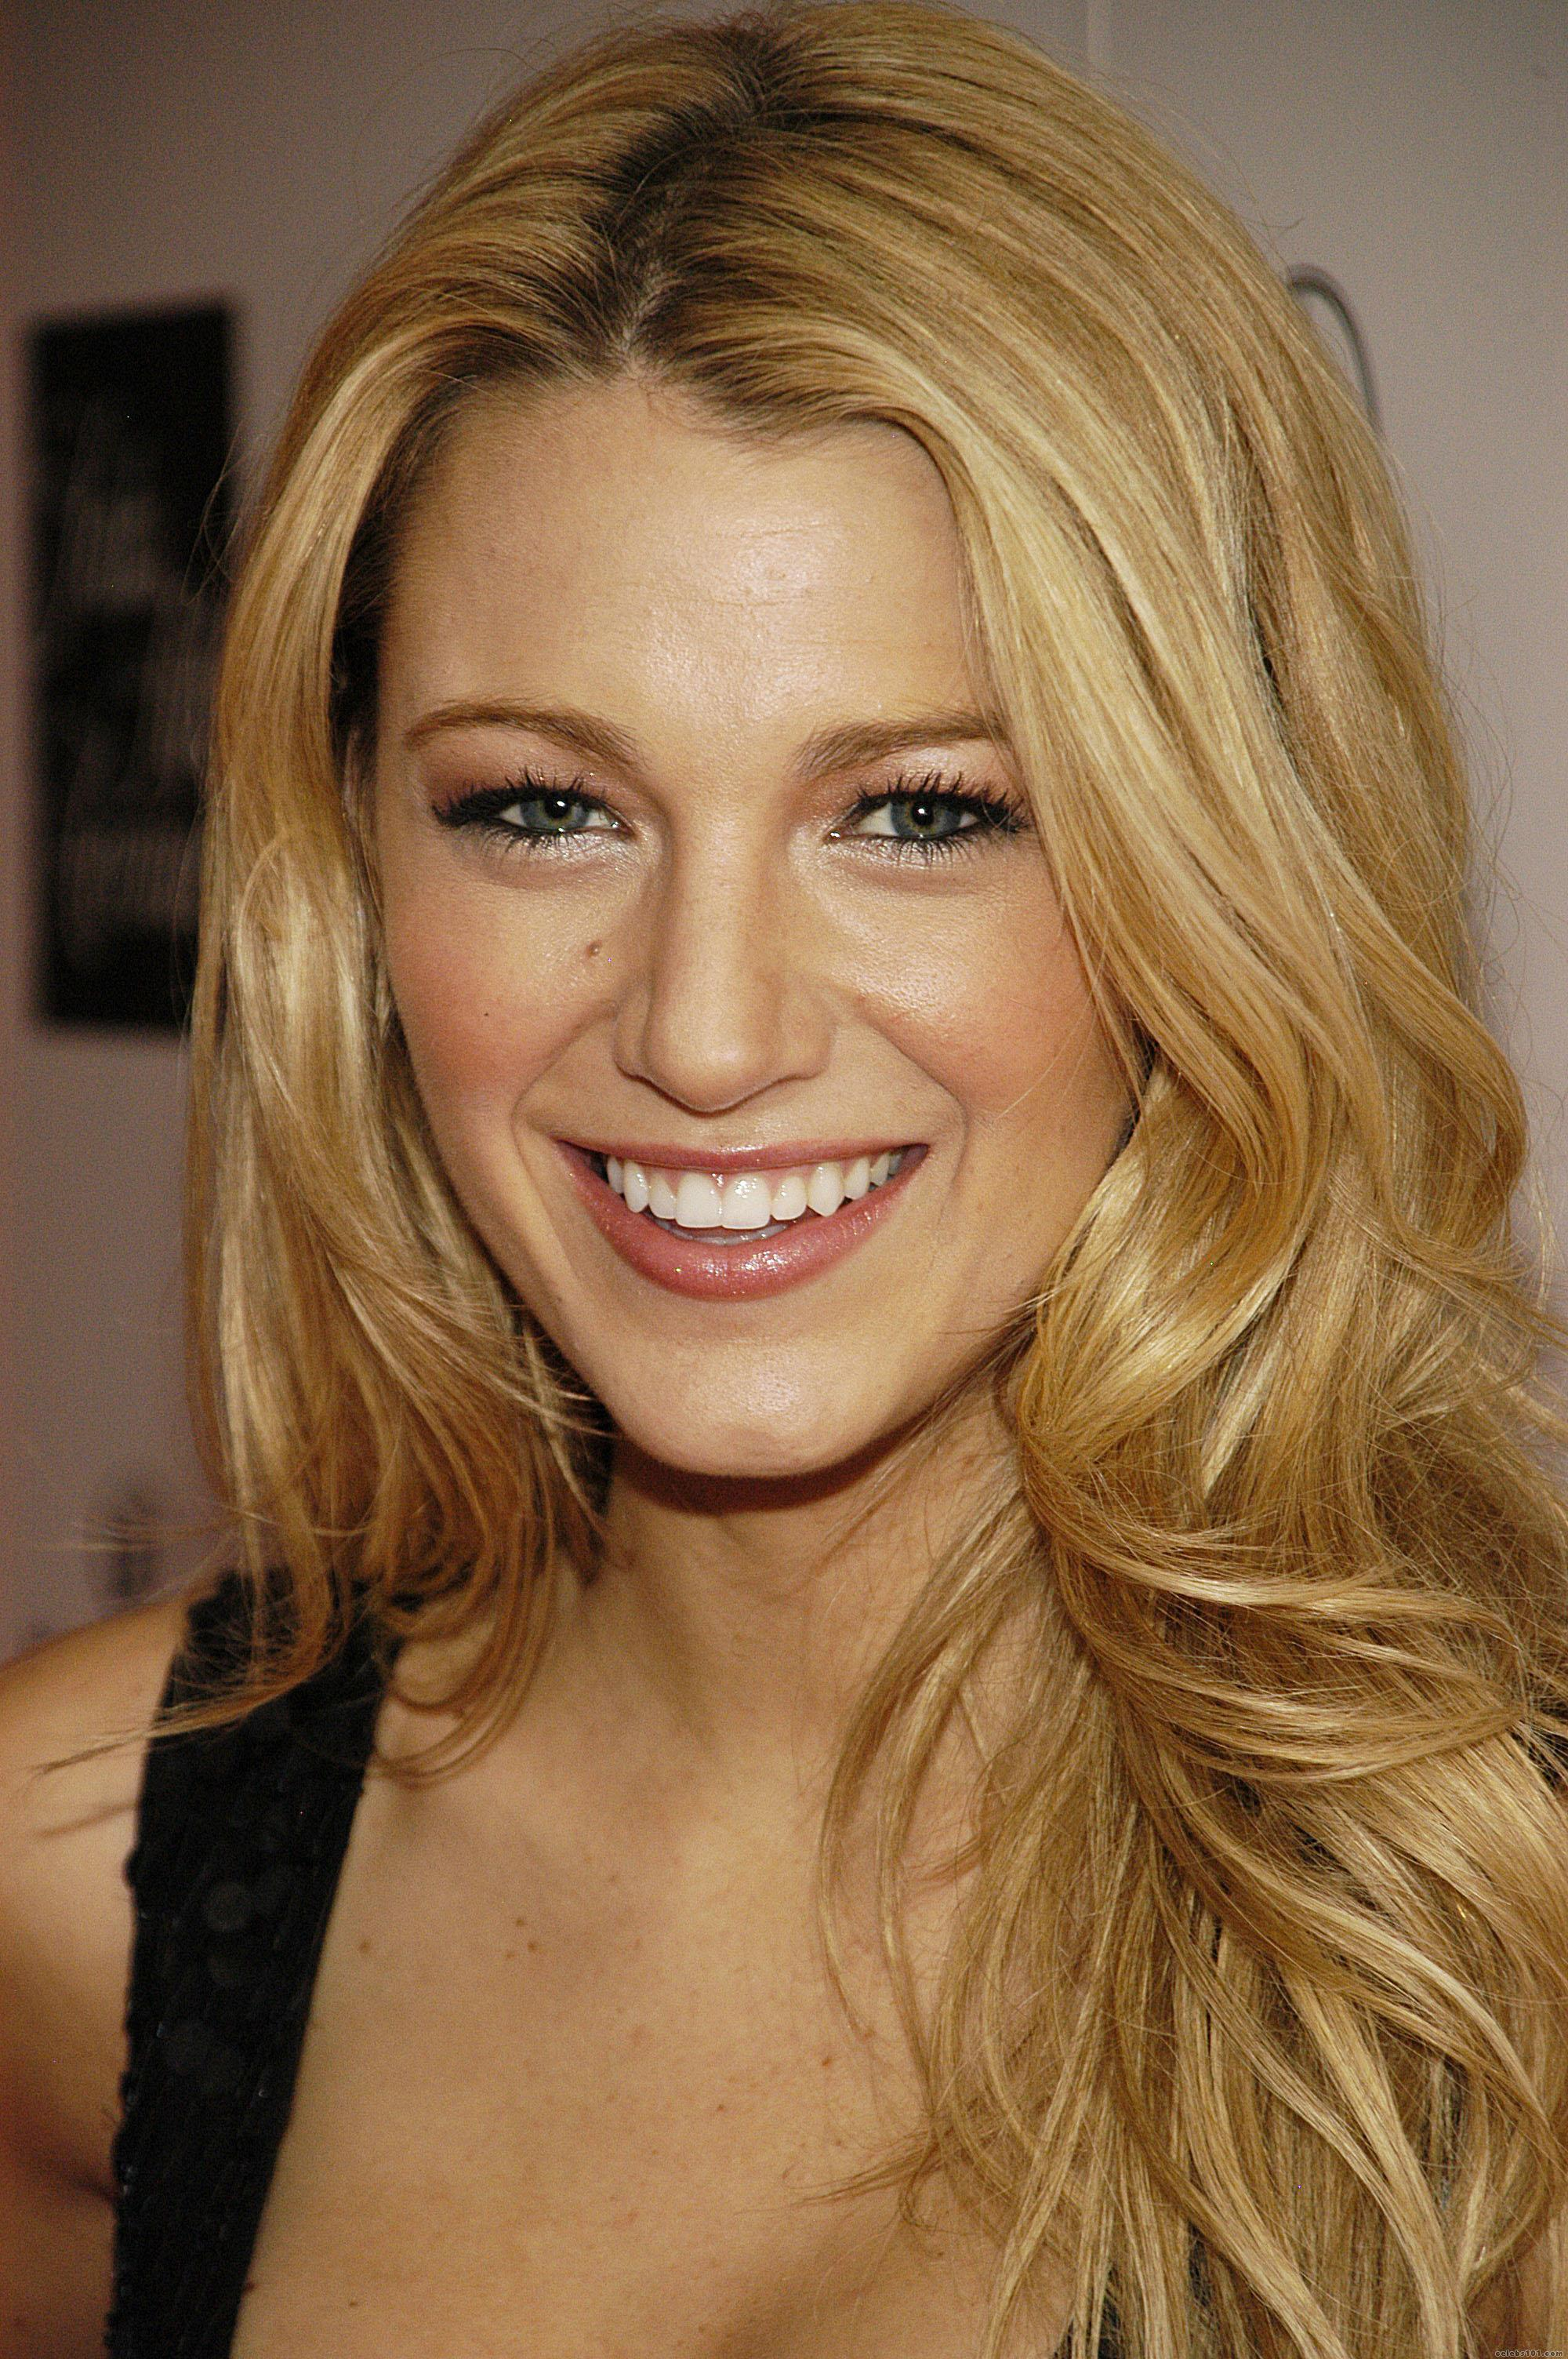 Blake Lively Wallpapers Images Photos Pictures Backgrounds Blake Lively